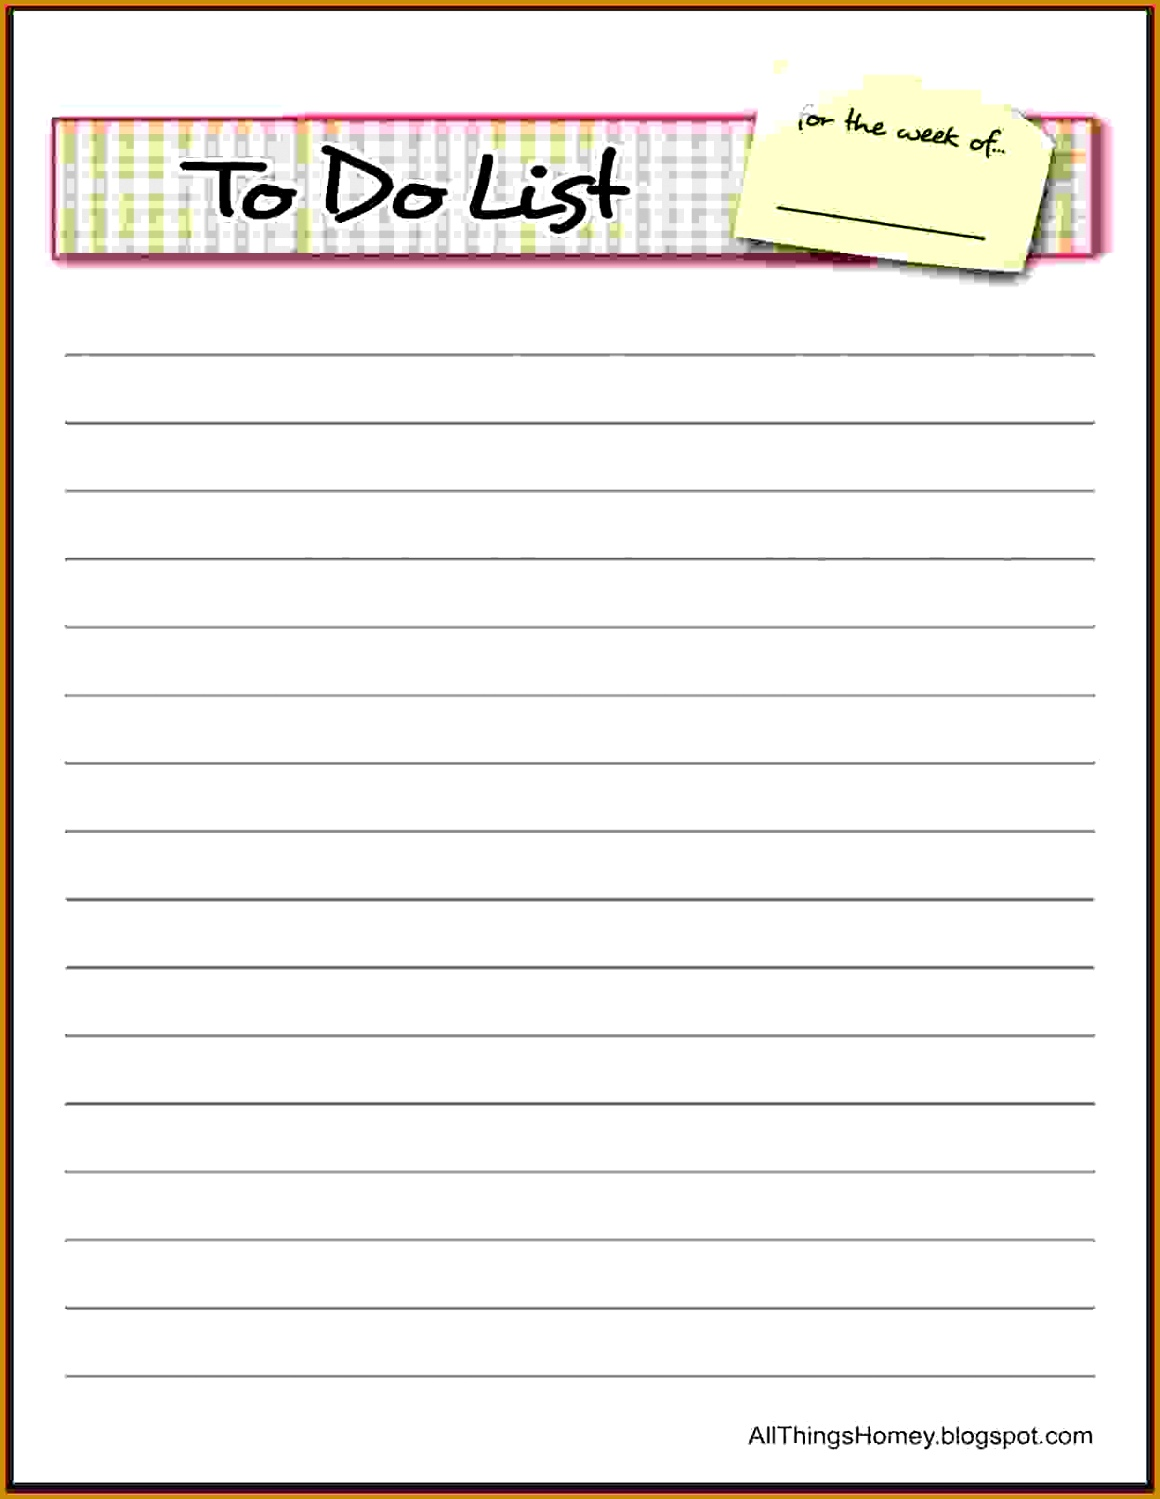 Things To Do List Template do list bordered 14991160